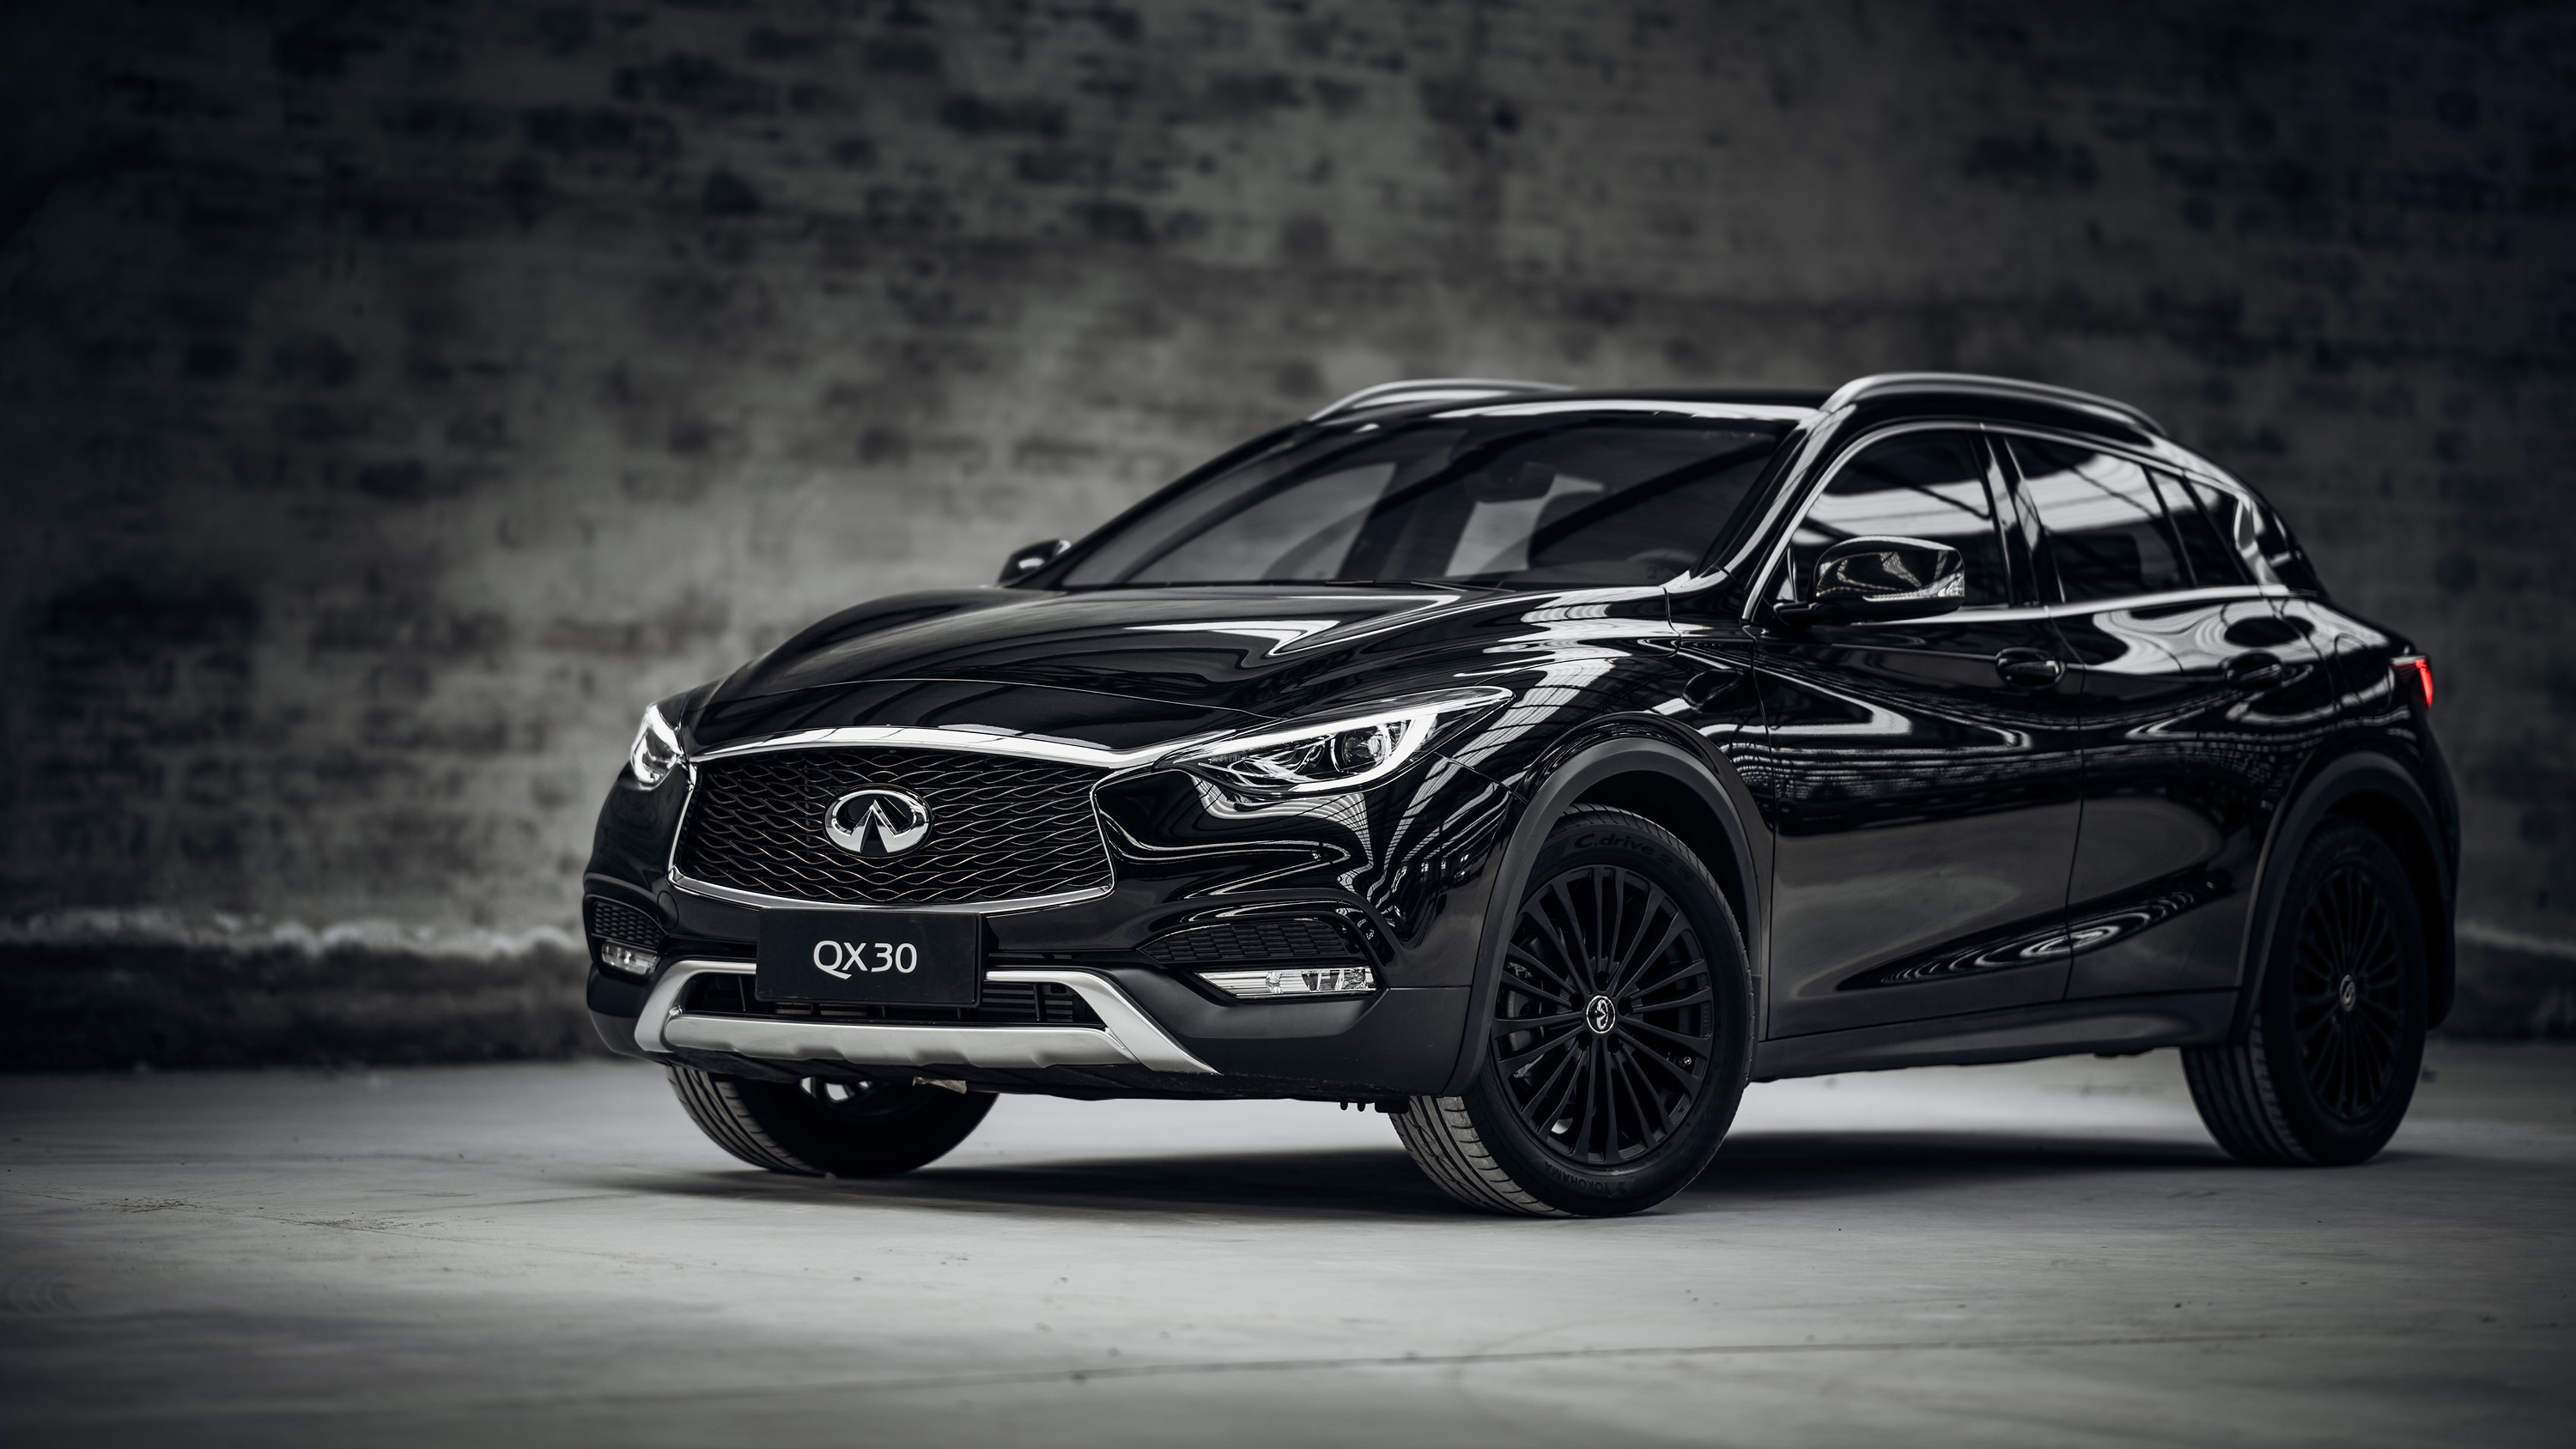 infiniti qx30 night edition wallpapers crossover cars 2560 1440 1366 iphone hdcarwallpapers besthqwallpapers 1080